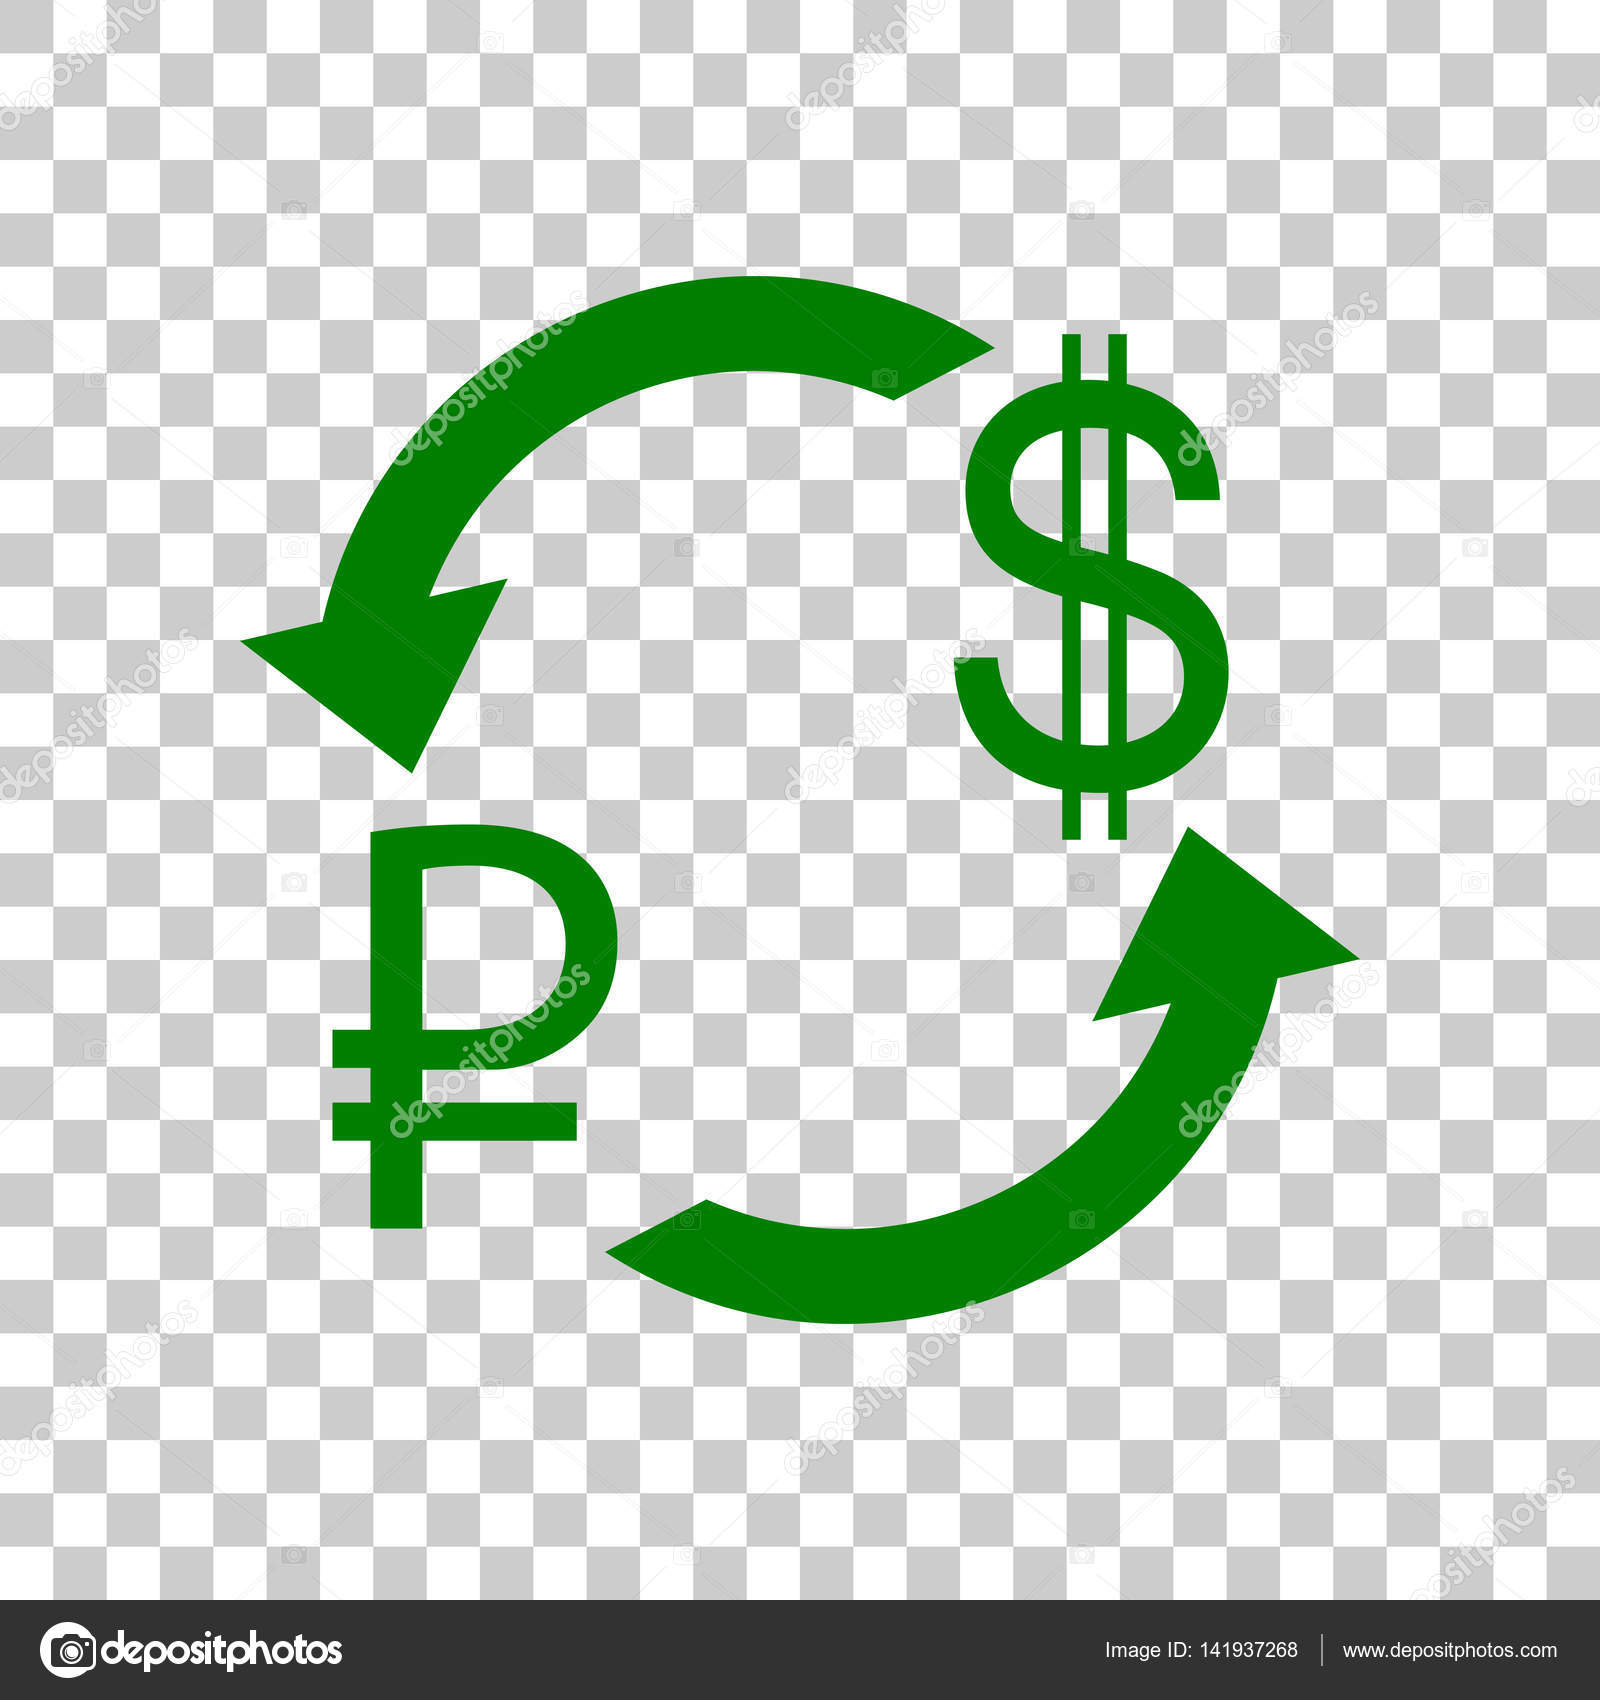 Currency exchange sign rouble and us dollar dark green icon on currency exchange sign rouble and us dollar dark green icon on transparent background biocorpaavc Gallery